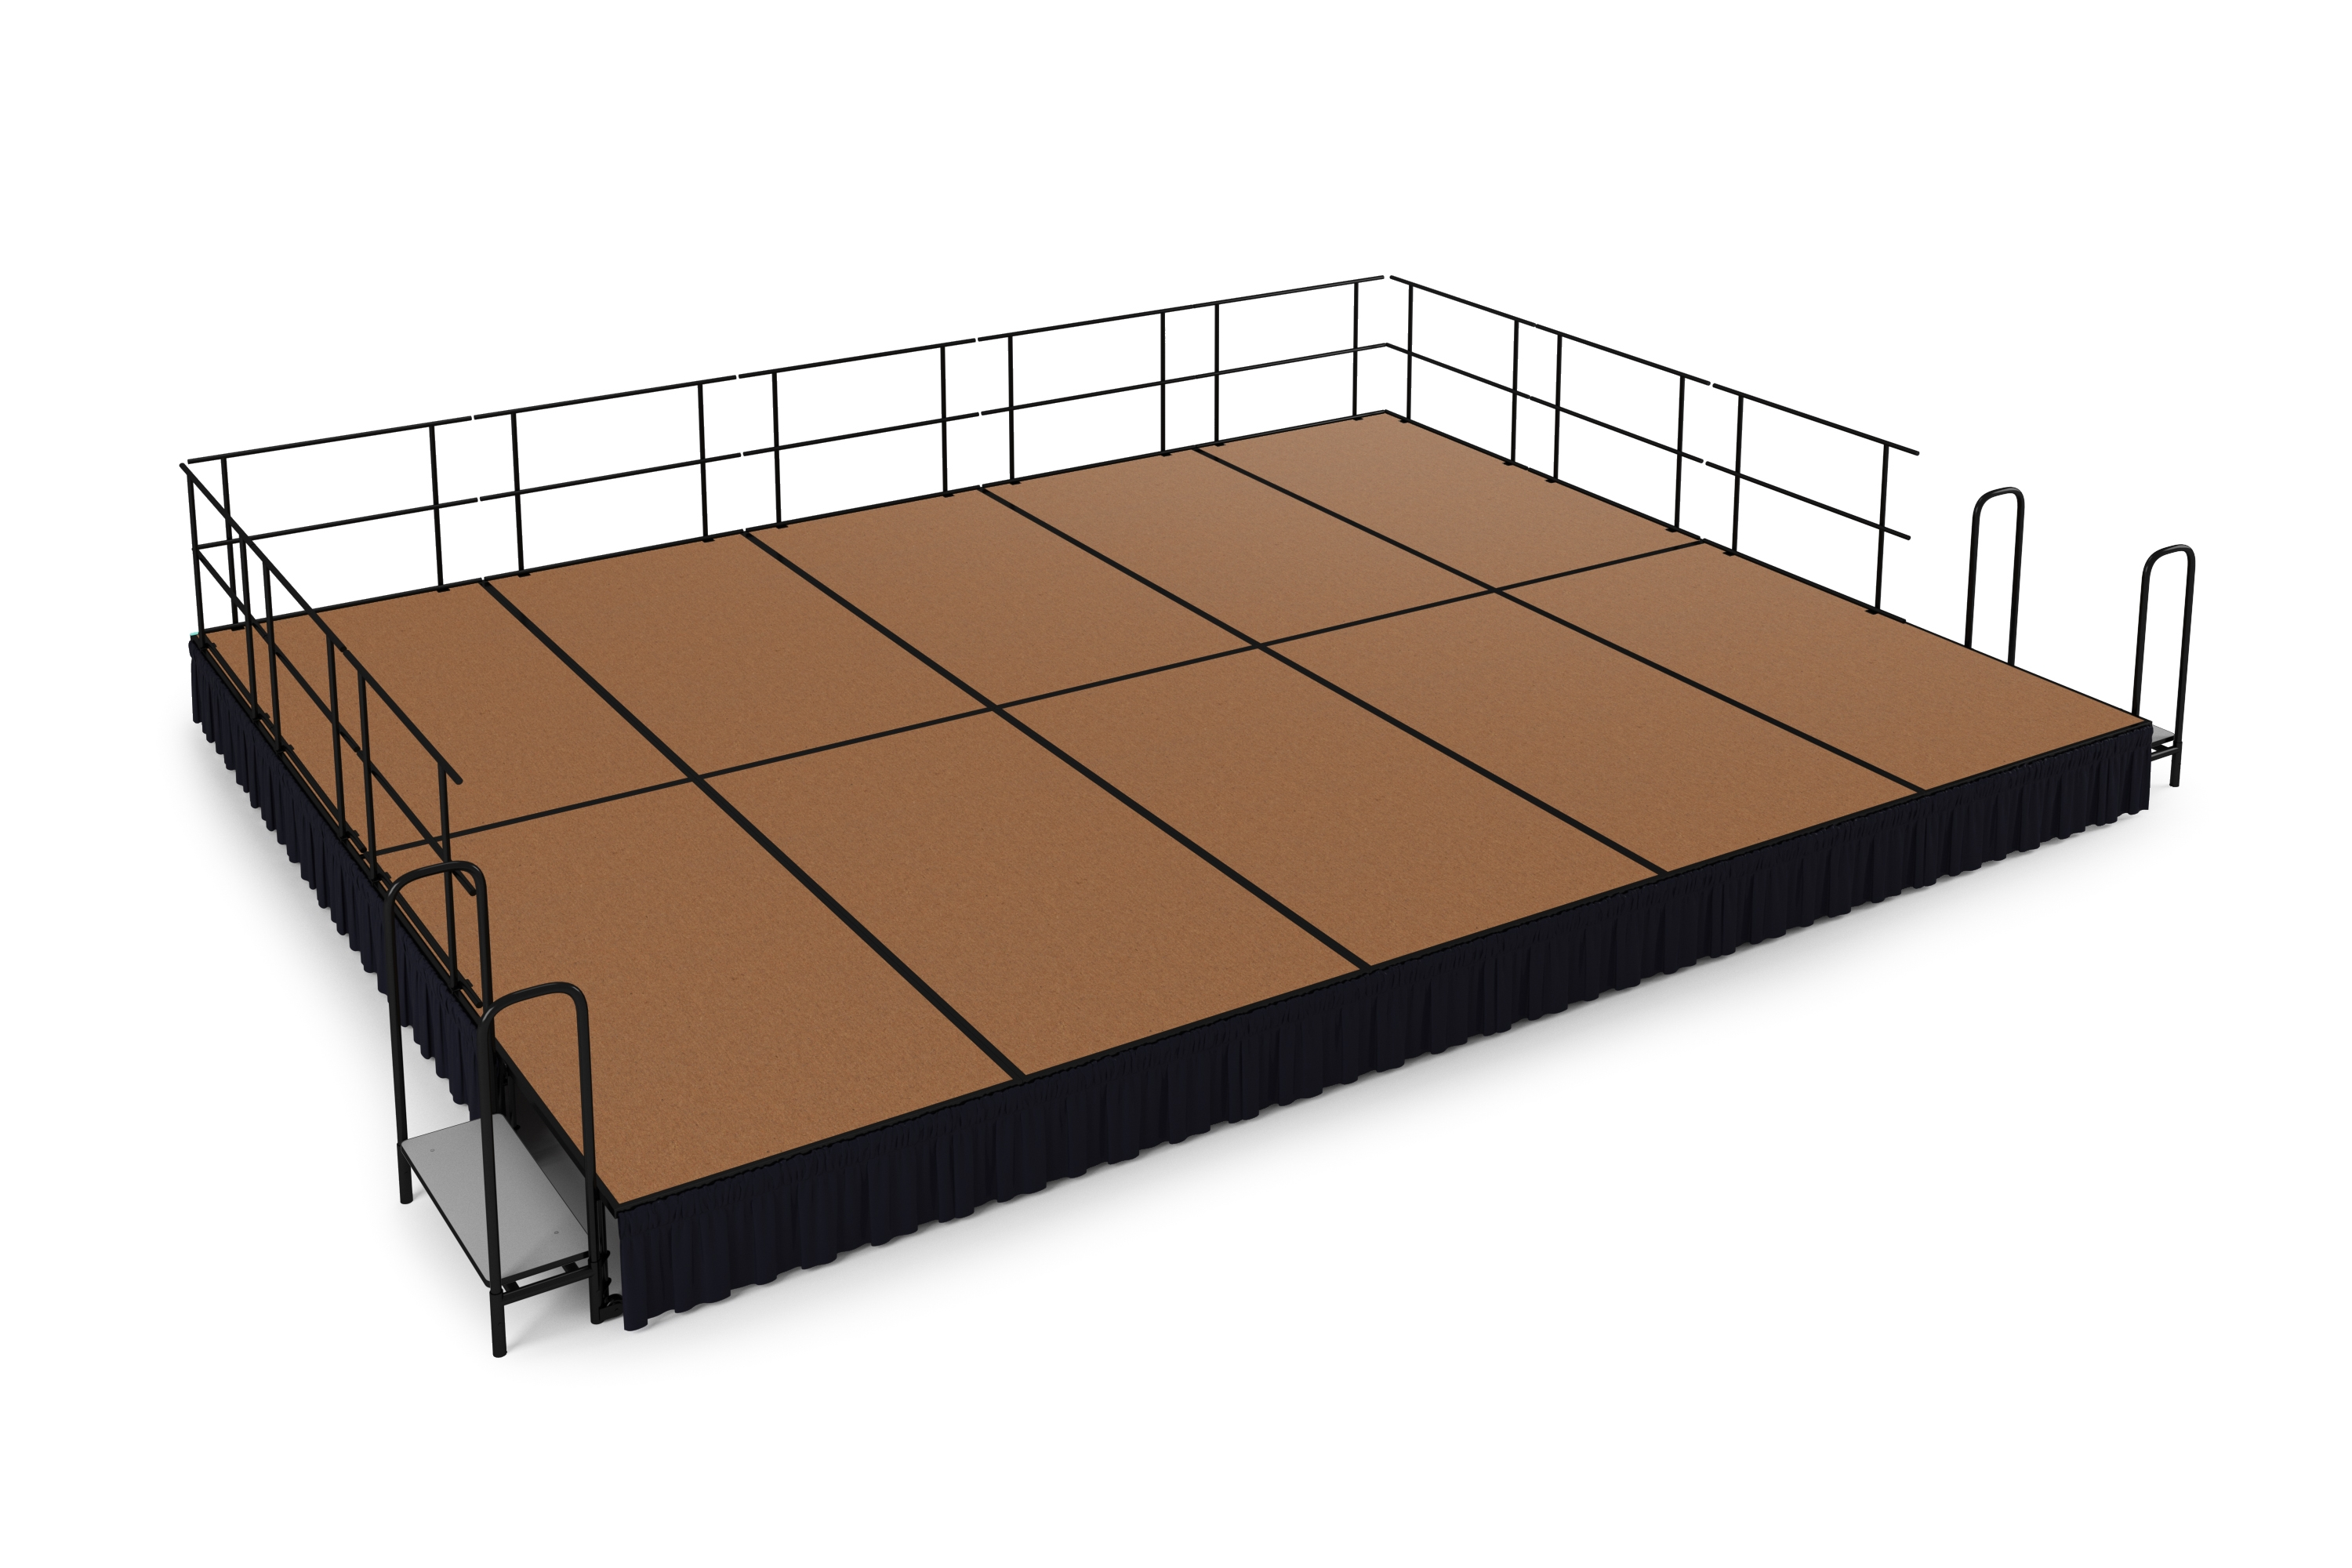 NPS 20' x 16' Hardboard Portable Stage Package with Steps & Rails - 320 sqft - Select Height